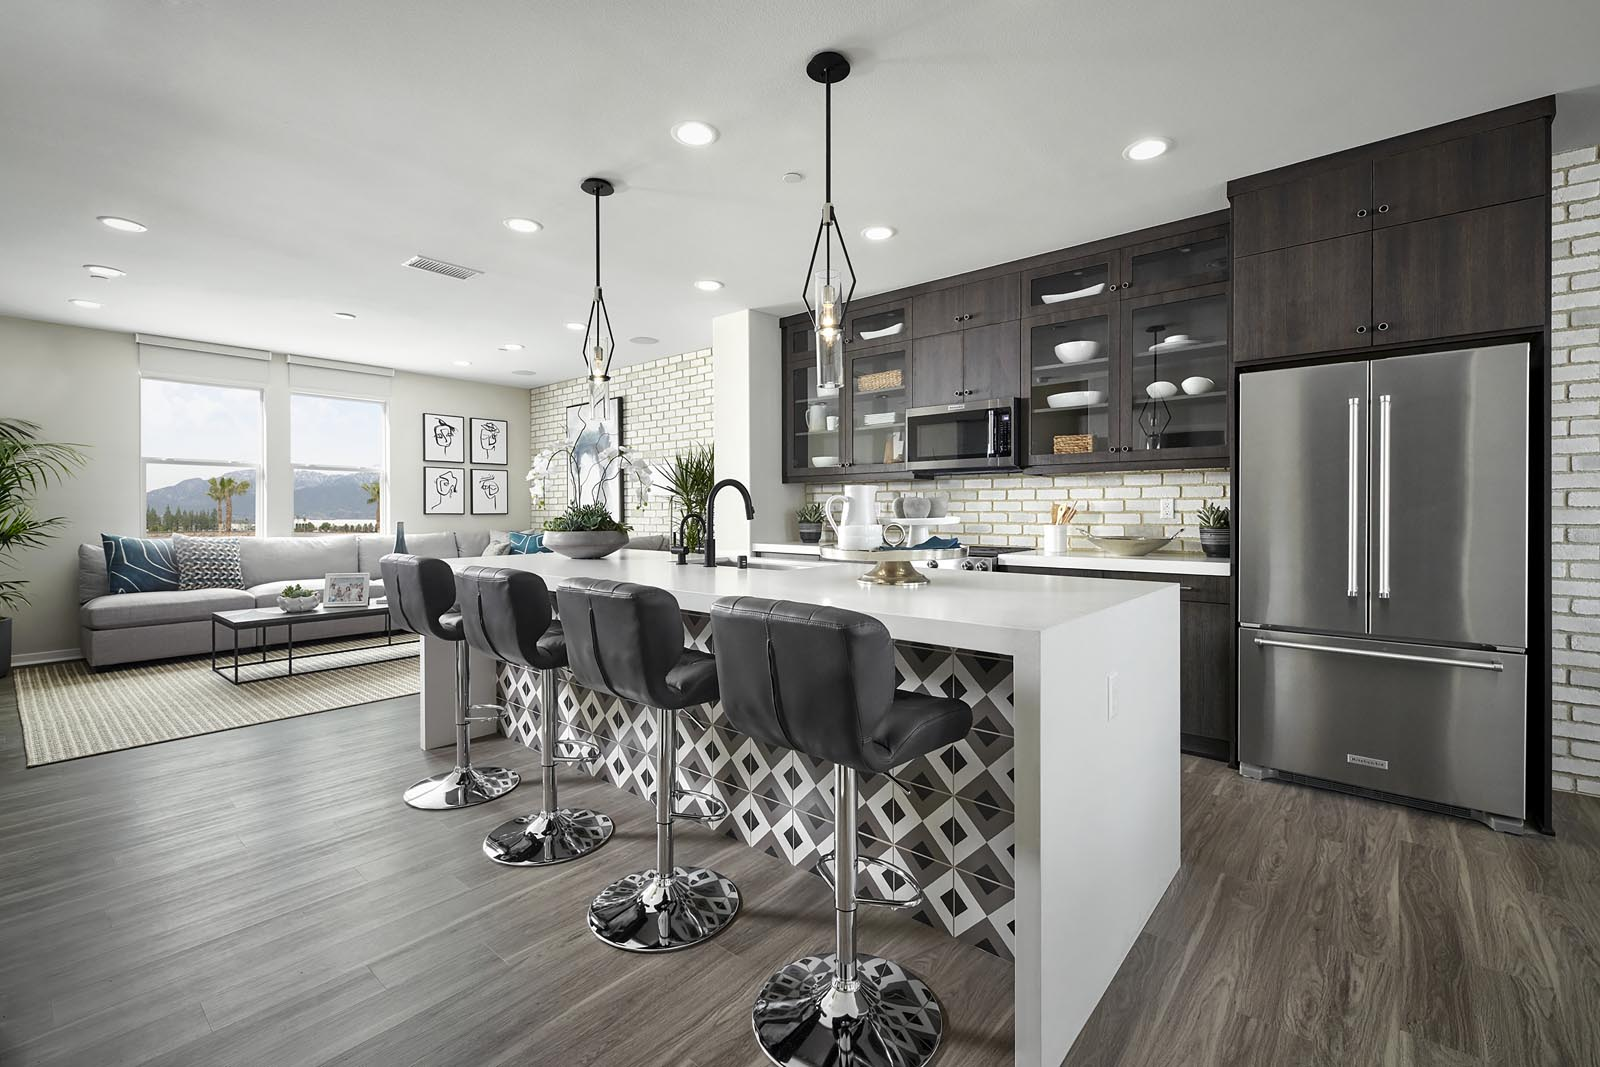 Kitchen | Residence 2 | Tempo | New Homes in Rancho Cucamonga, CA | Tri Pointe Homes